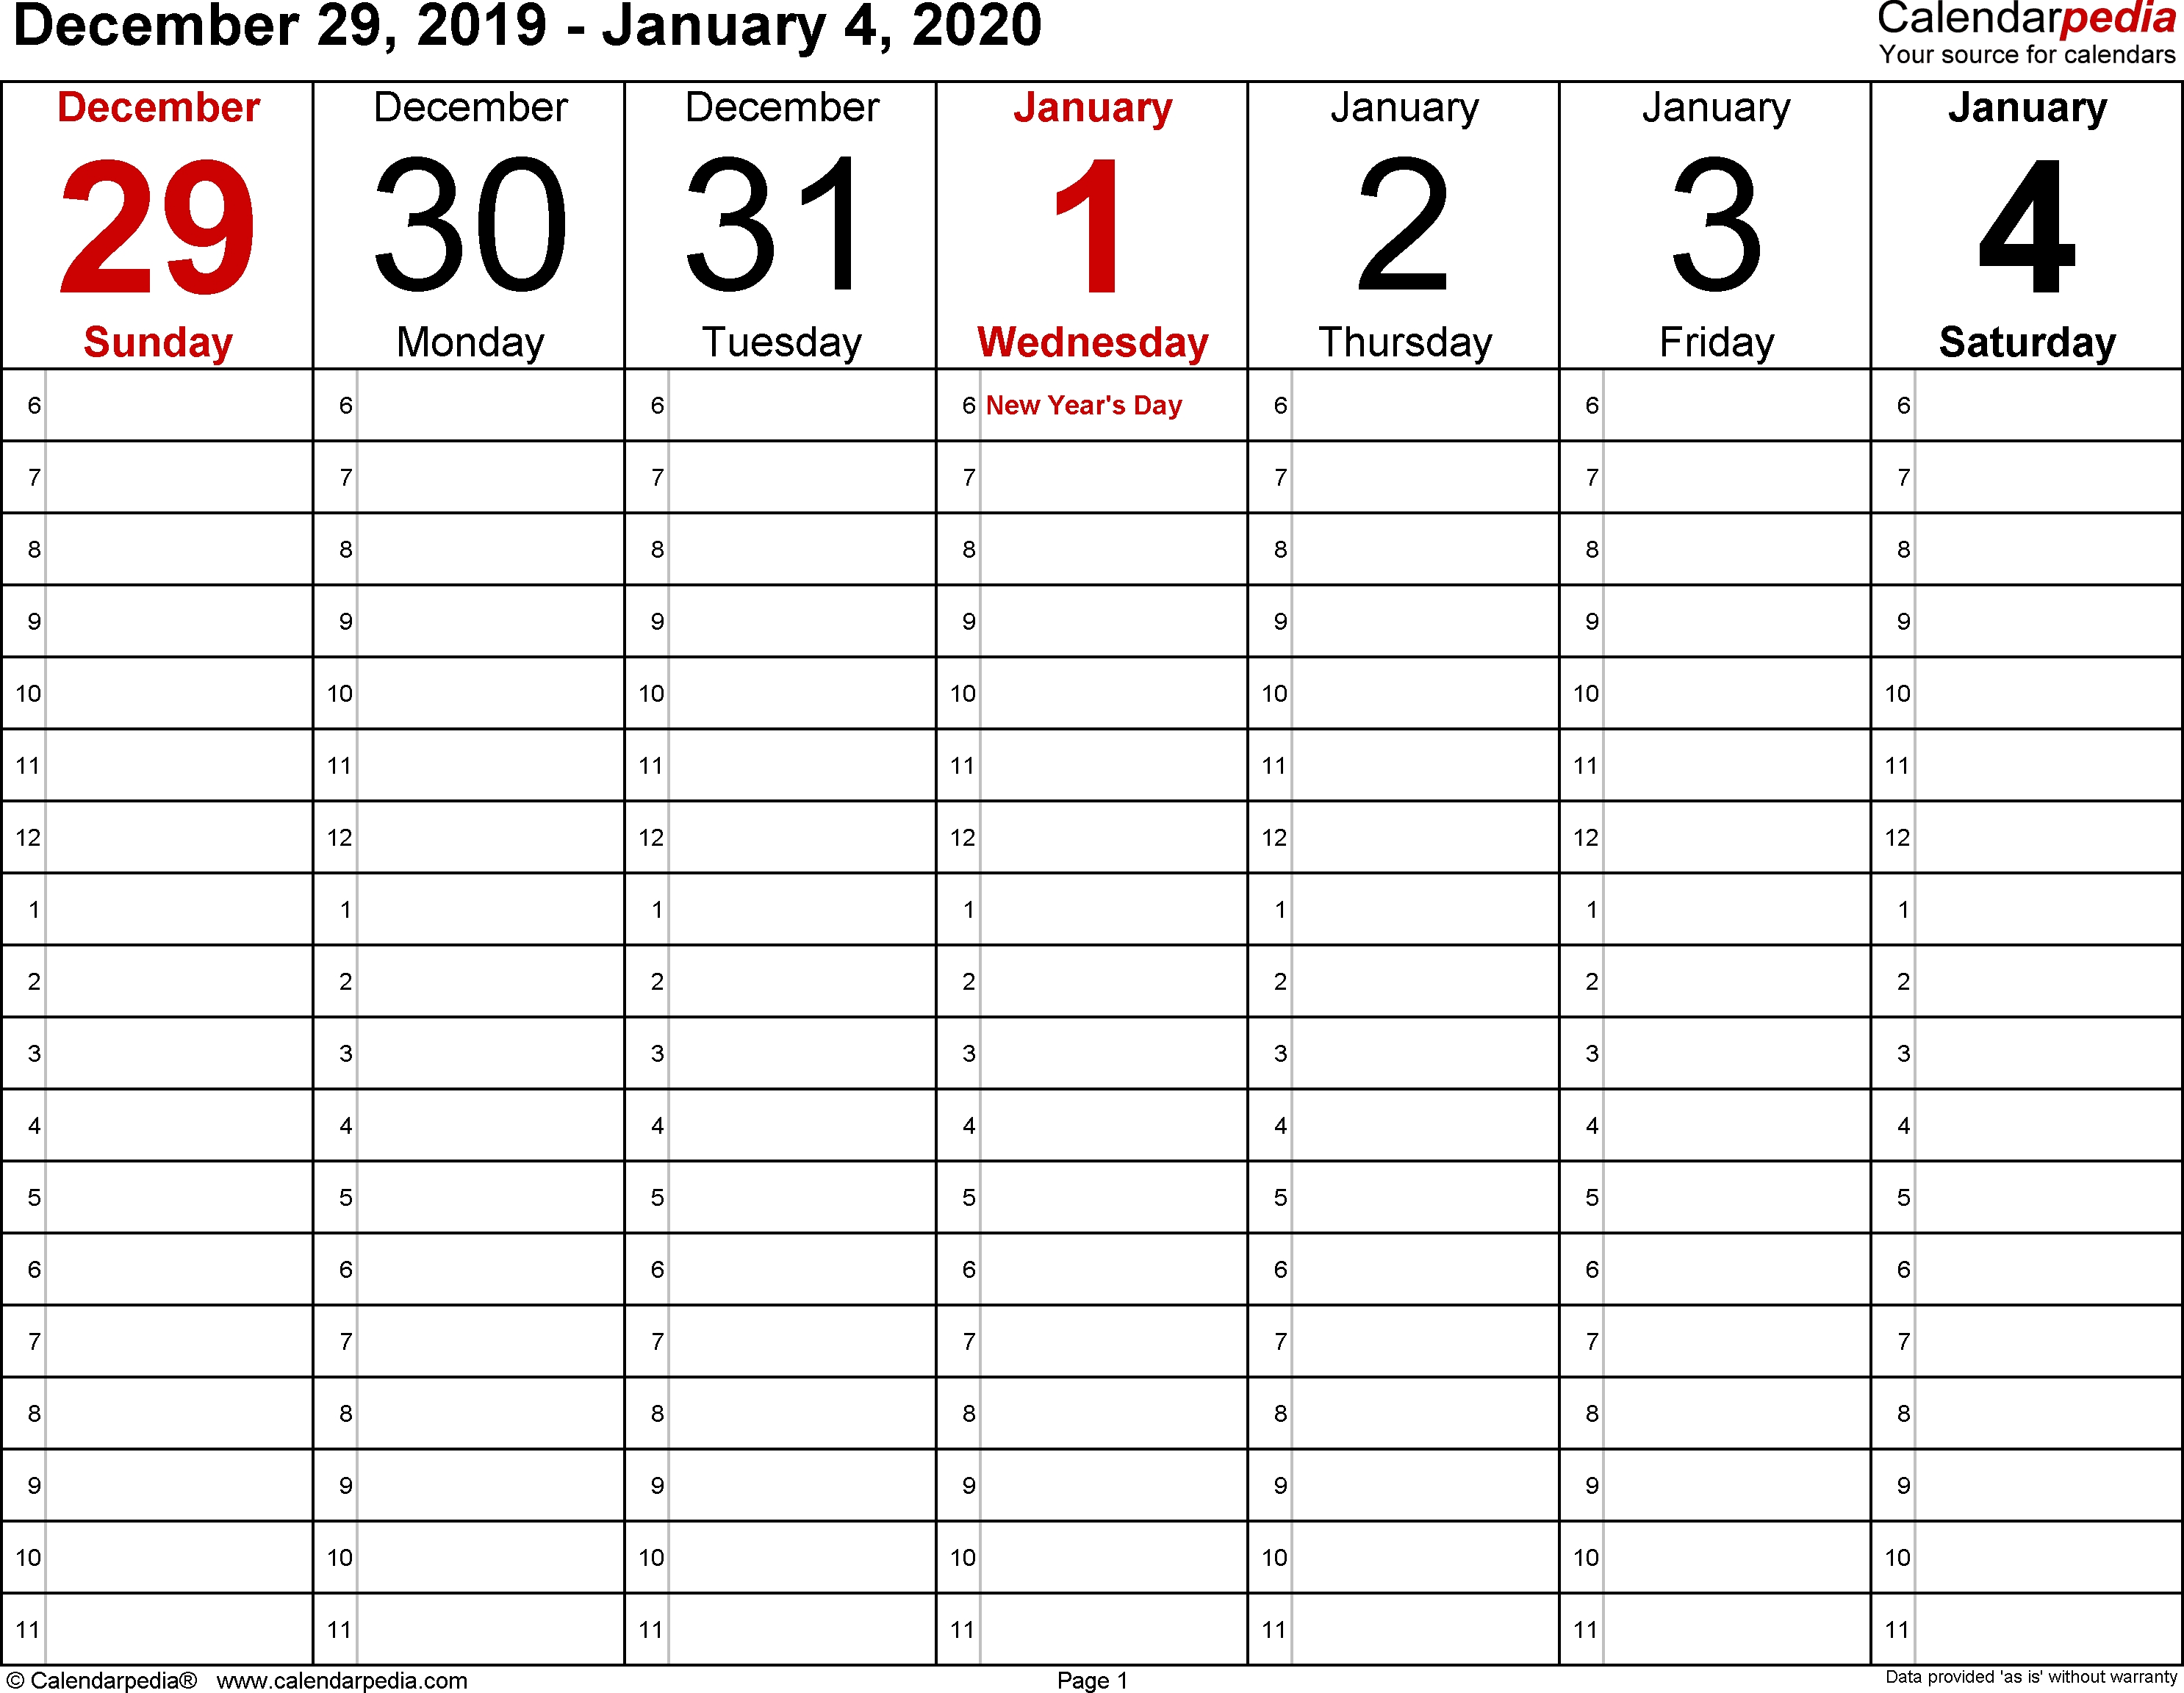 Calendarpedia - Your Source For Calendars-2020 2 Page Monthly Calendar Printable Pdf